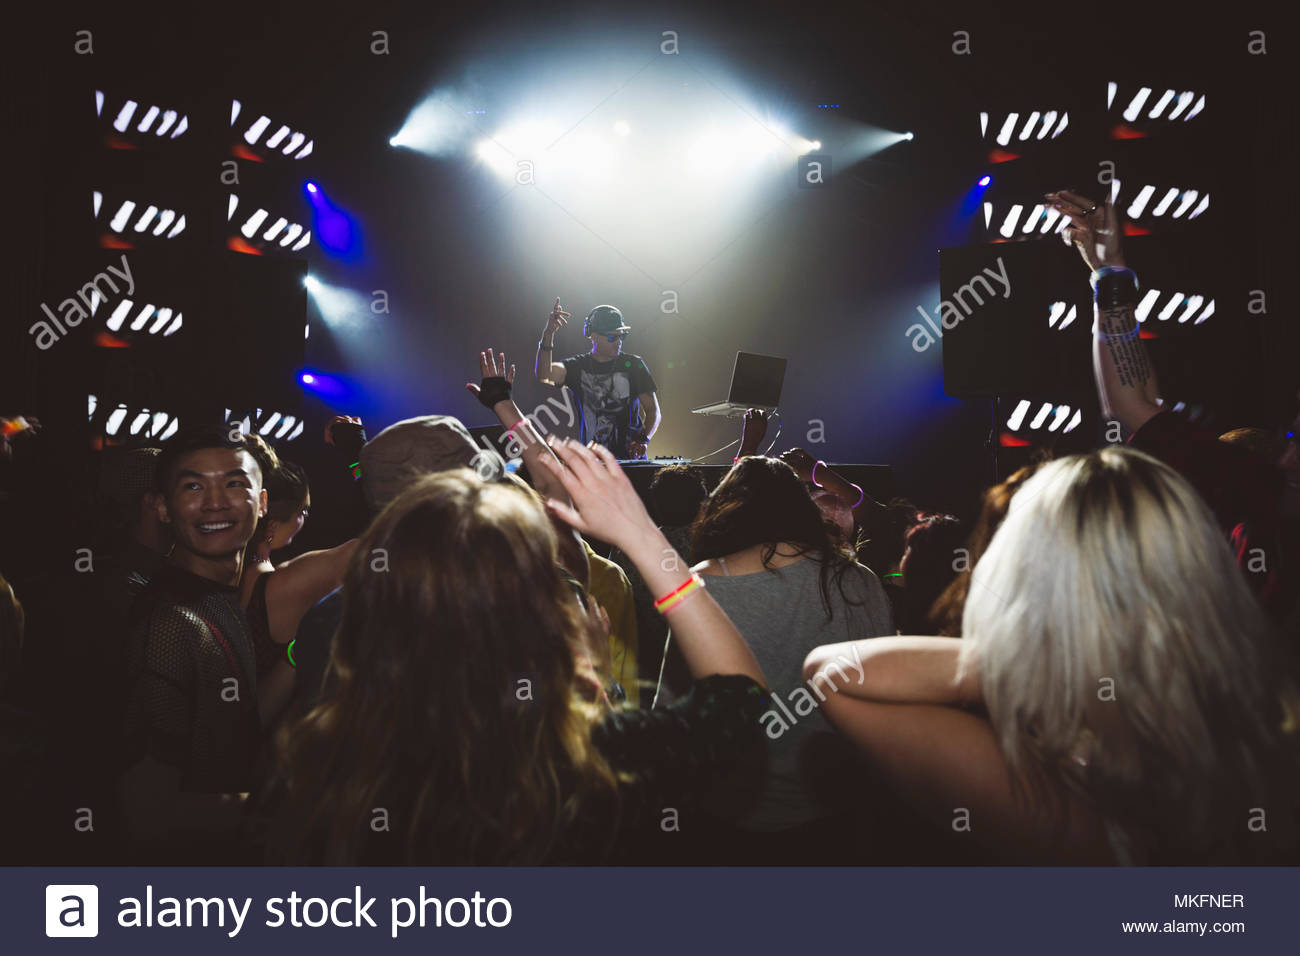 Crowd cheering for DJ performing on nightclub stage - Stock Image